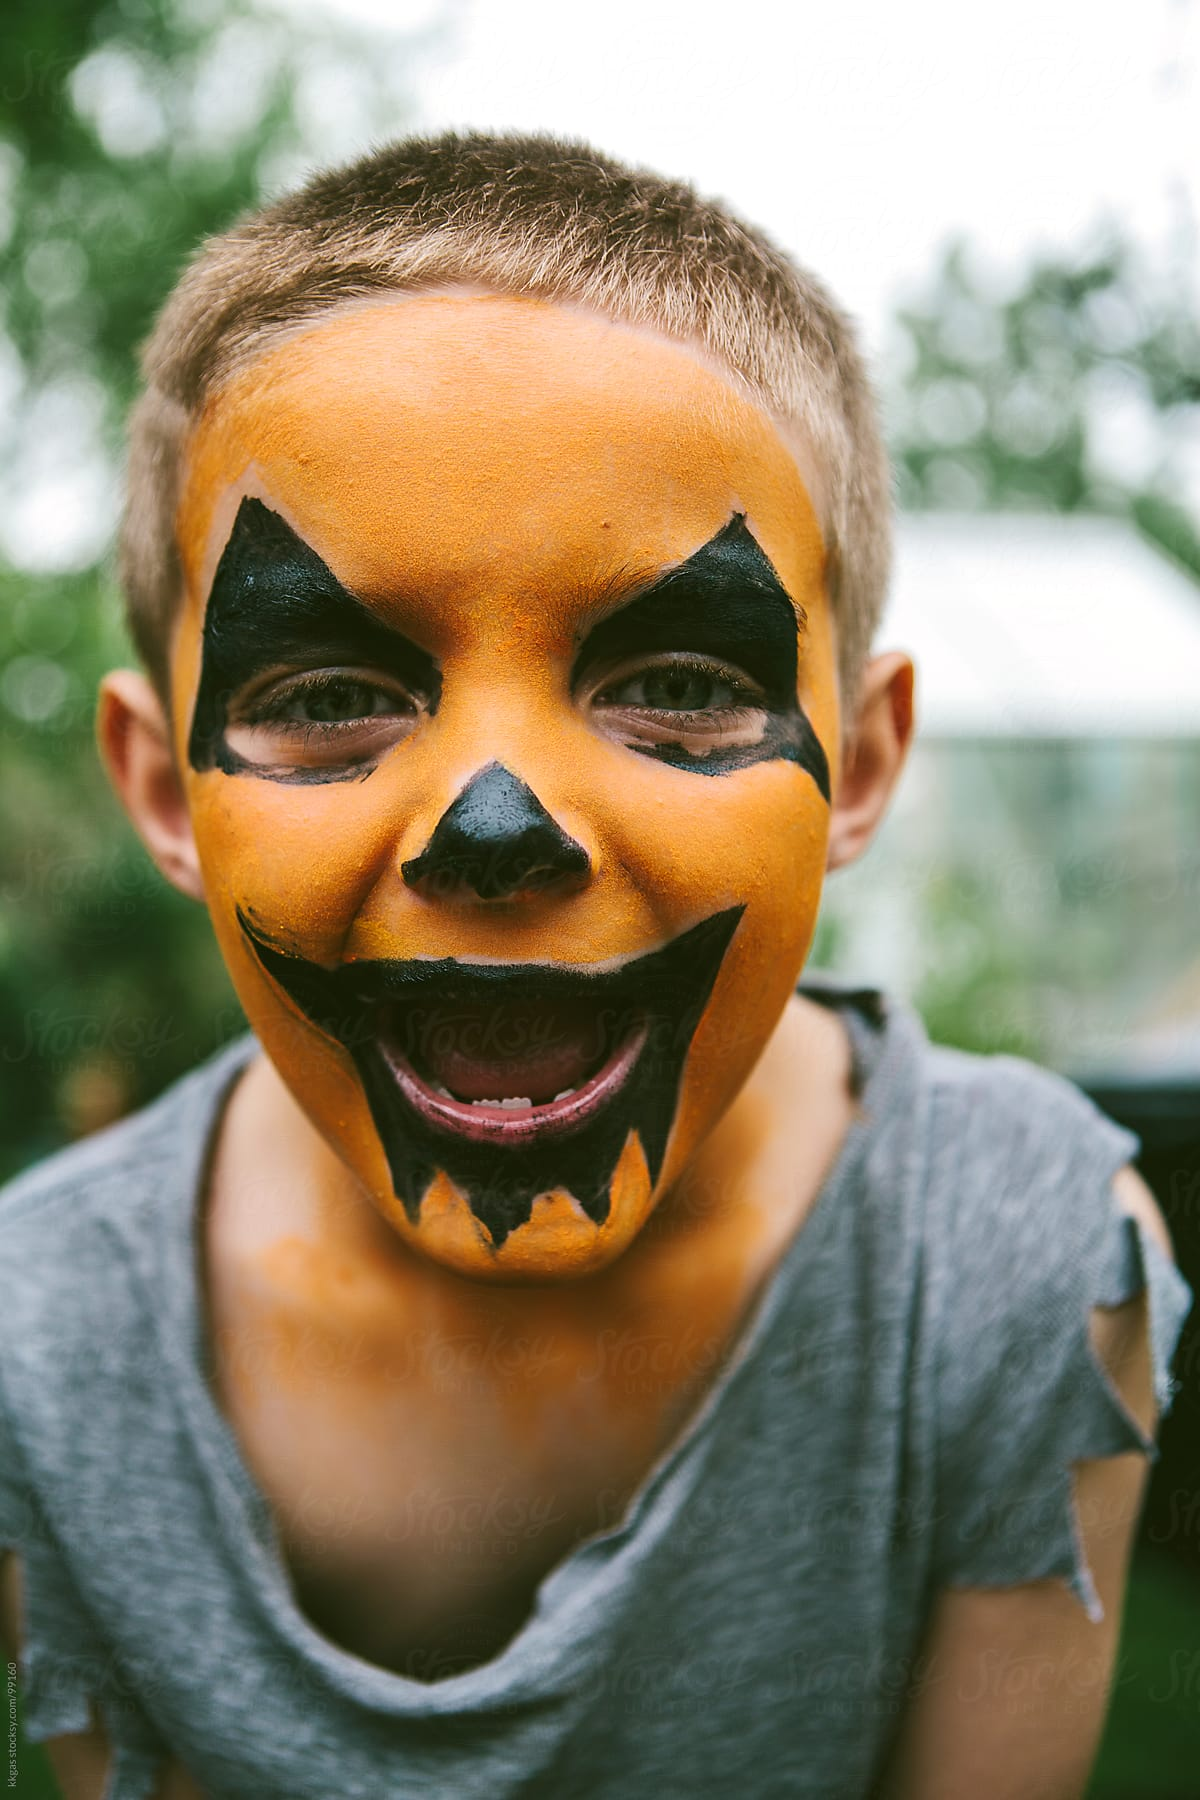 Little Boy With Jack O Lantern Face Paint For Halloween By Kkgas Stocksy United,Tuxedo Cats Wallpaper